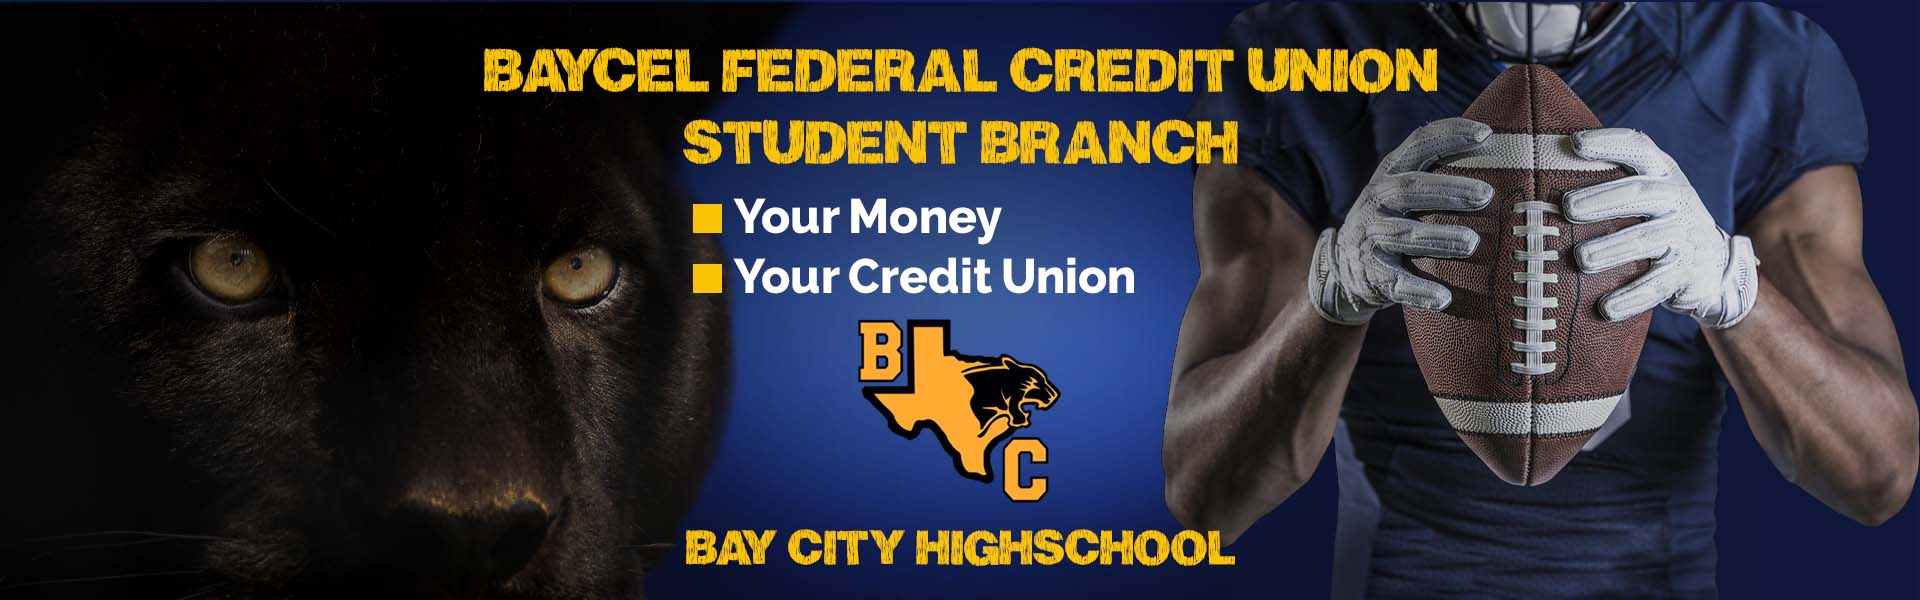 Promotion for new Bay City Highschool branch Banner